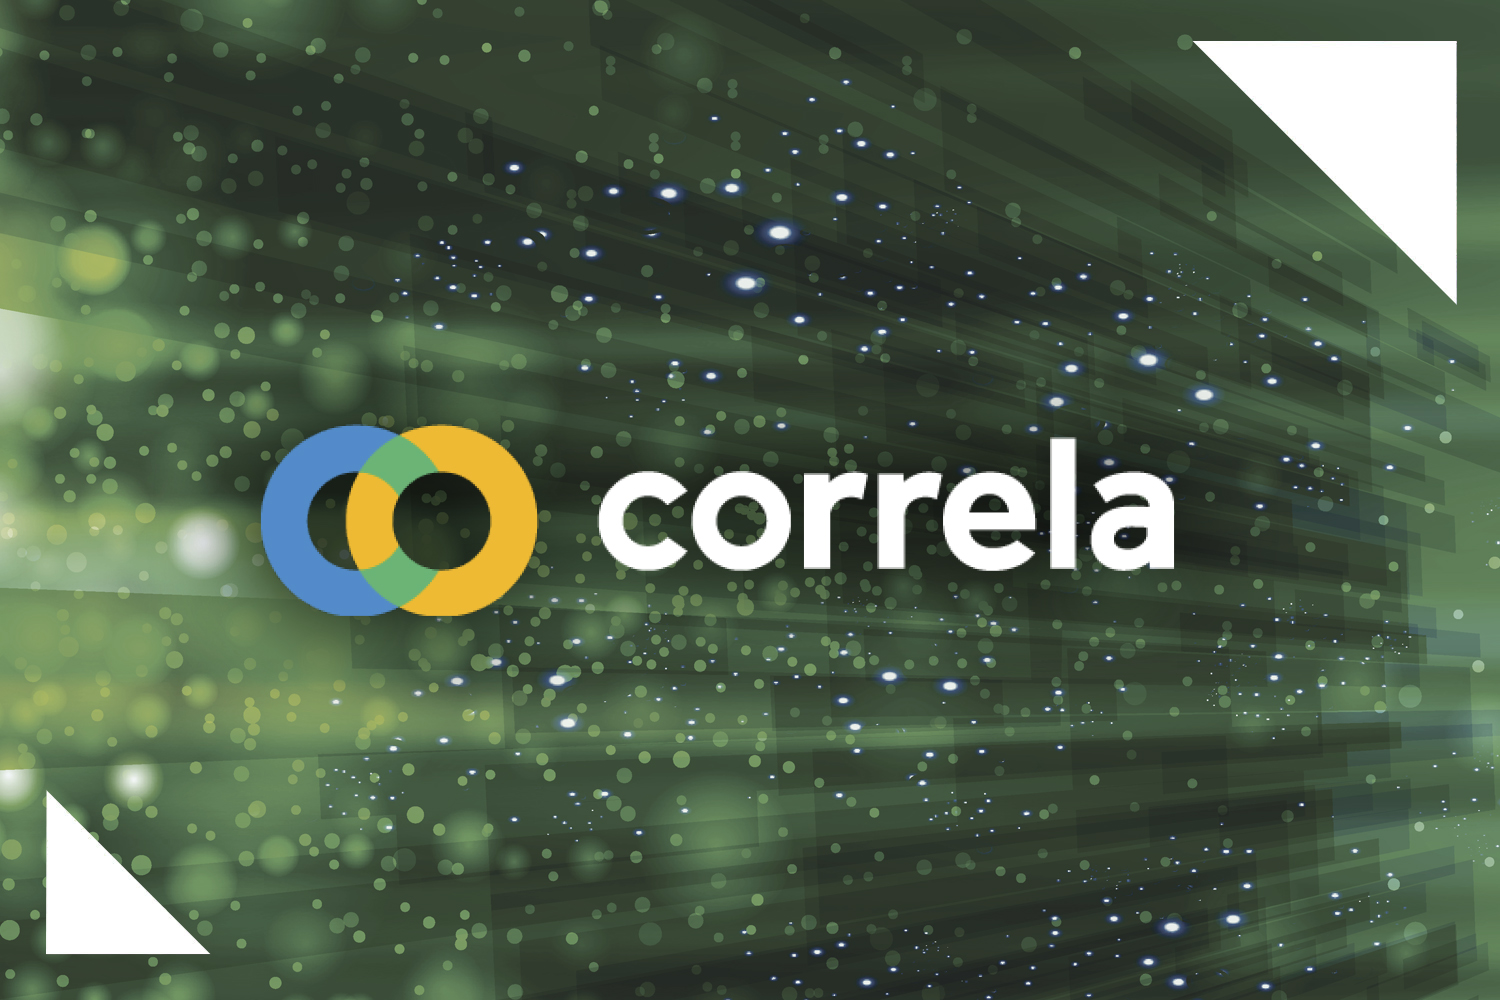 NorthEdge acquires energy technology and data business Correla to drive forward net zero ambition